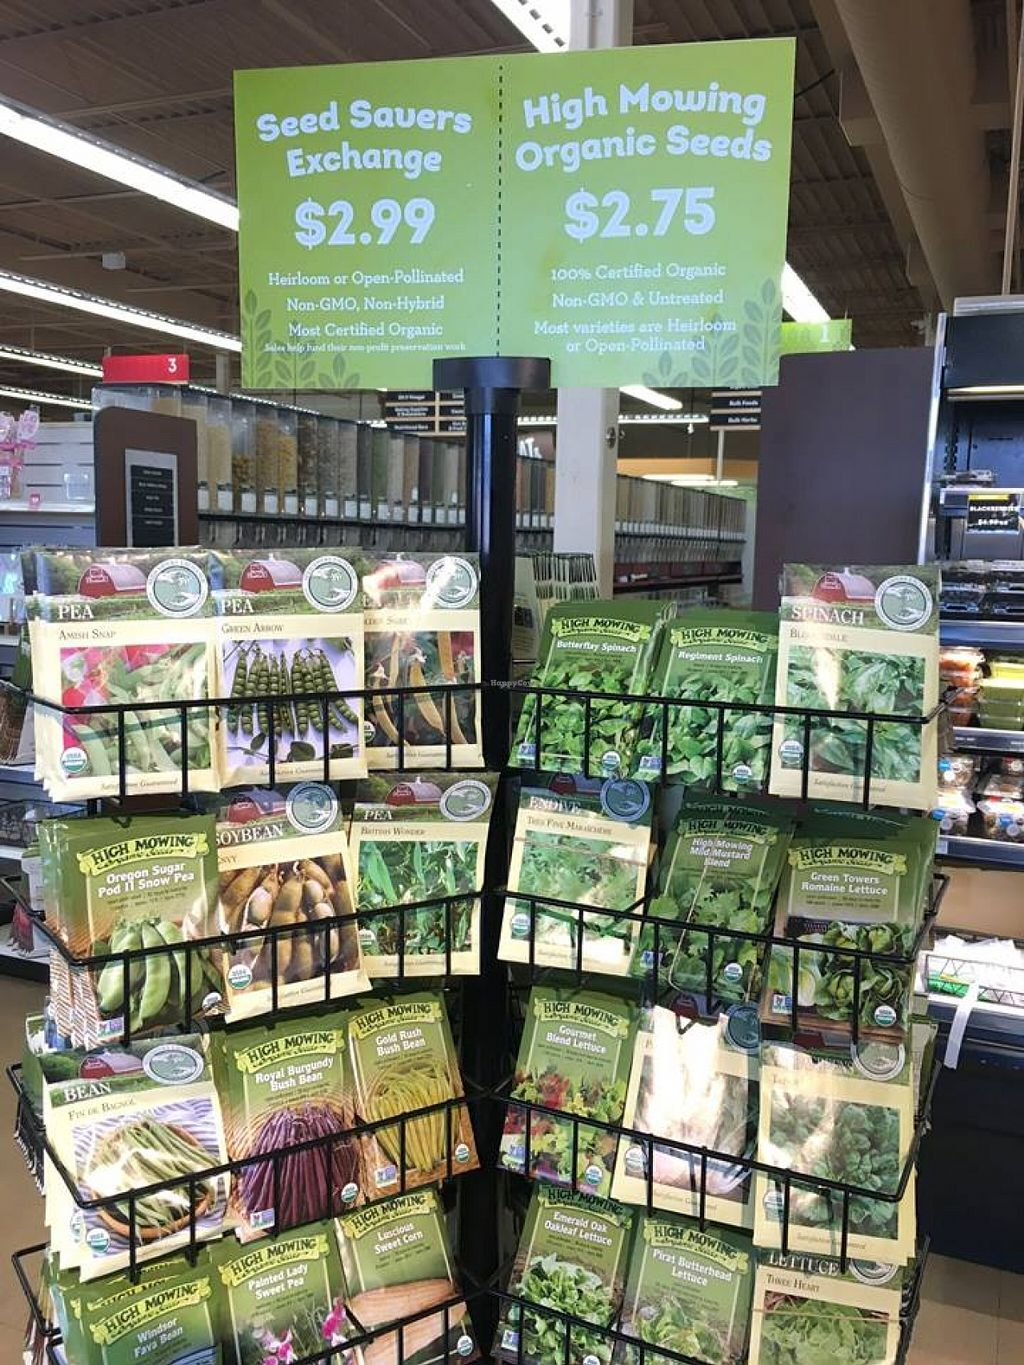 """Photo of Lakewinds Co-op  by <a href=""""/members/profile/community"""">community</a> <br/>Lakewinds Co-op <br/> April 7, 2016  - <a href='/contact/abuse/image/72102/143193'>Report</a>"""